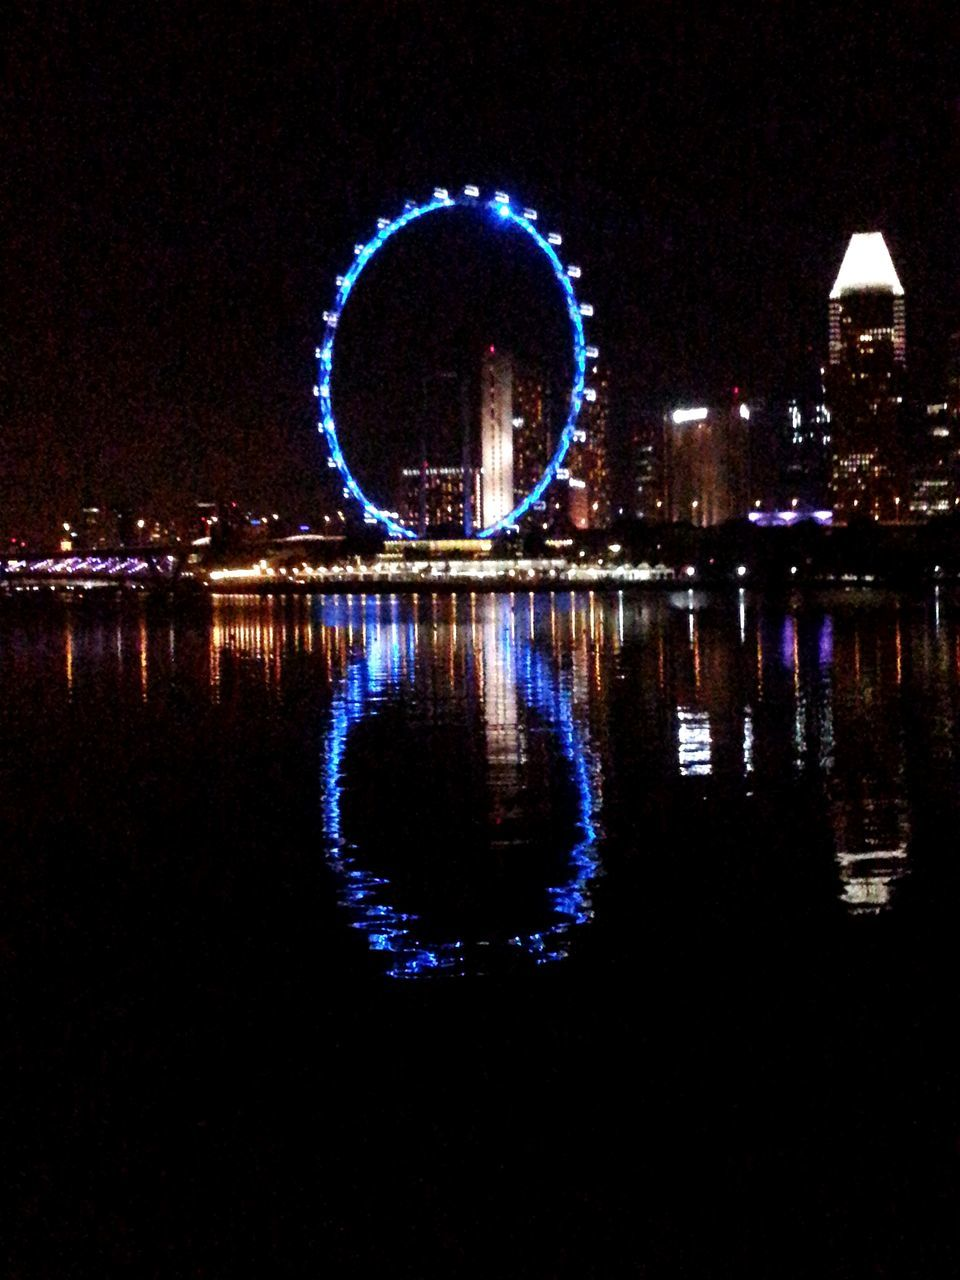 night, illuminated, reflection, arts culture and entertainment, water, no people, architecture, built structure, outdoors, sky, nature